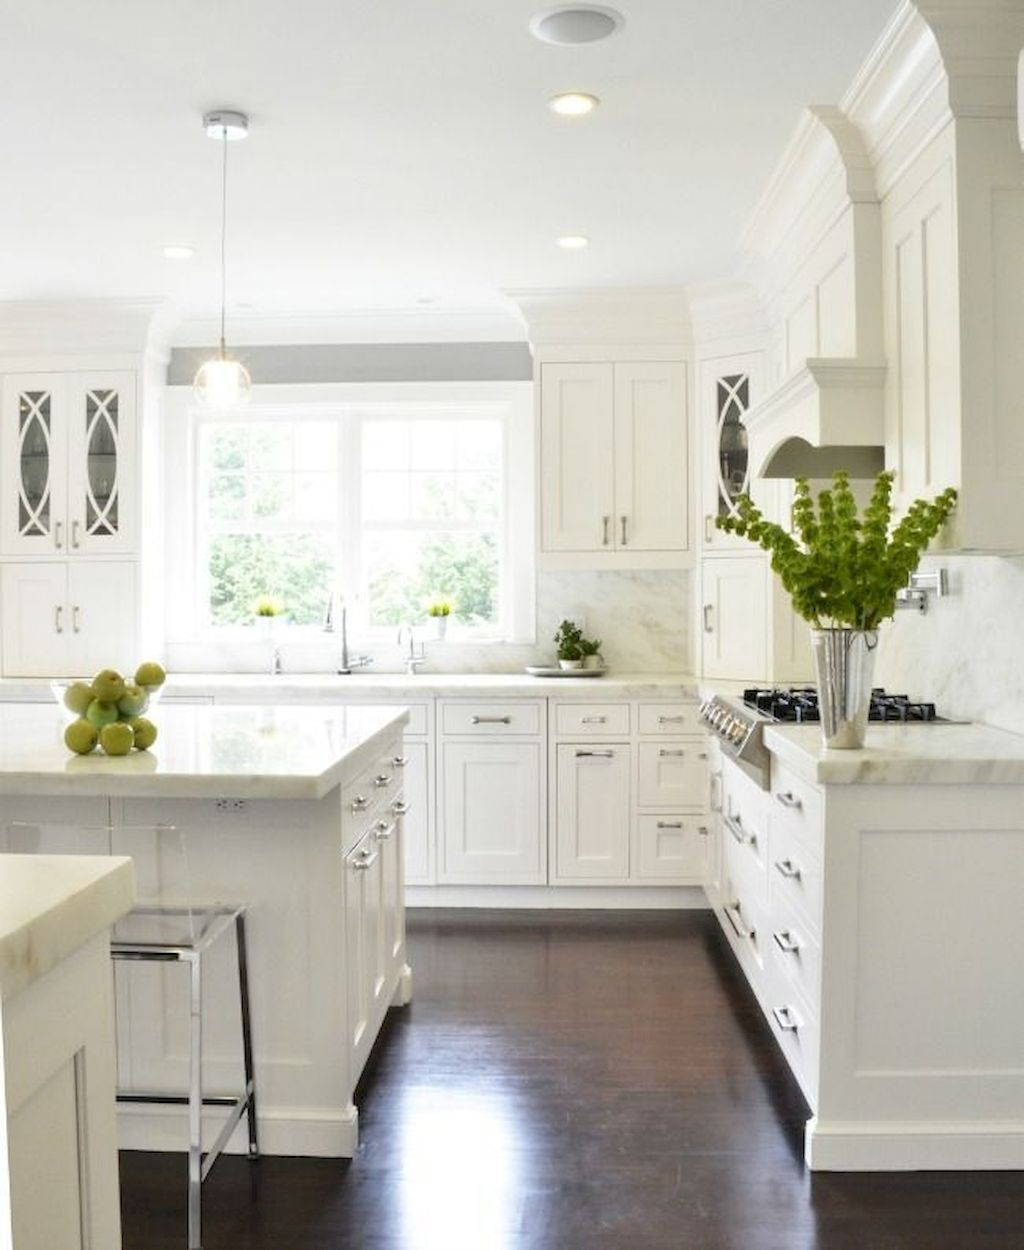 White Kitchen Cabinets Refinishing: Pin By Alecia Davis On House DIY Projects